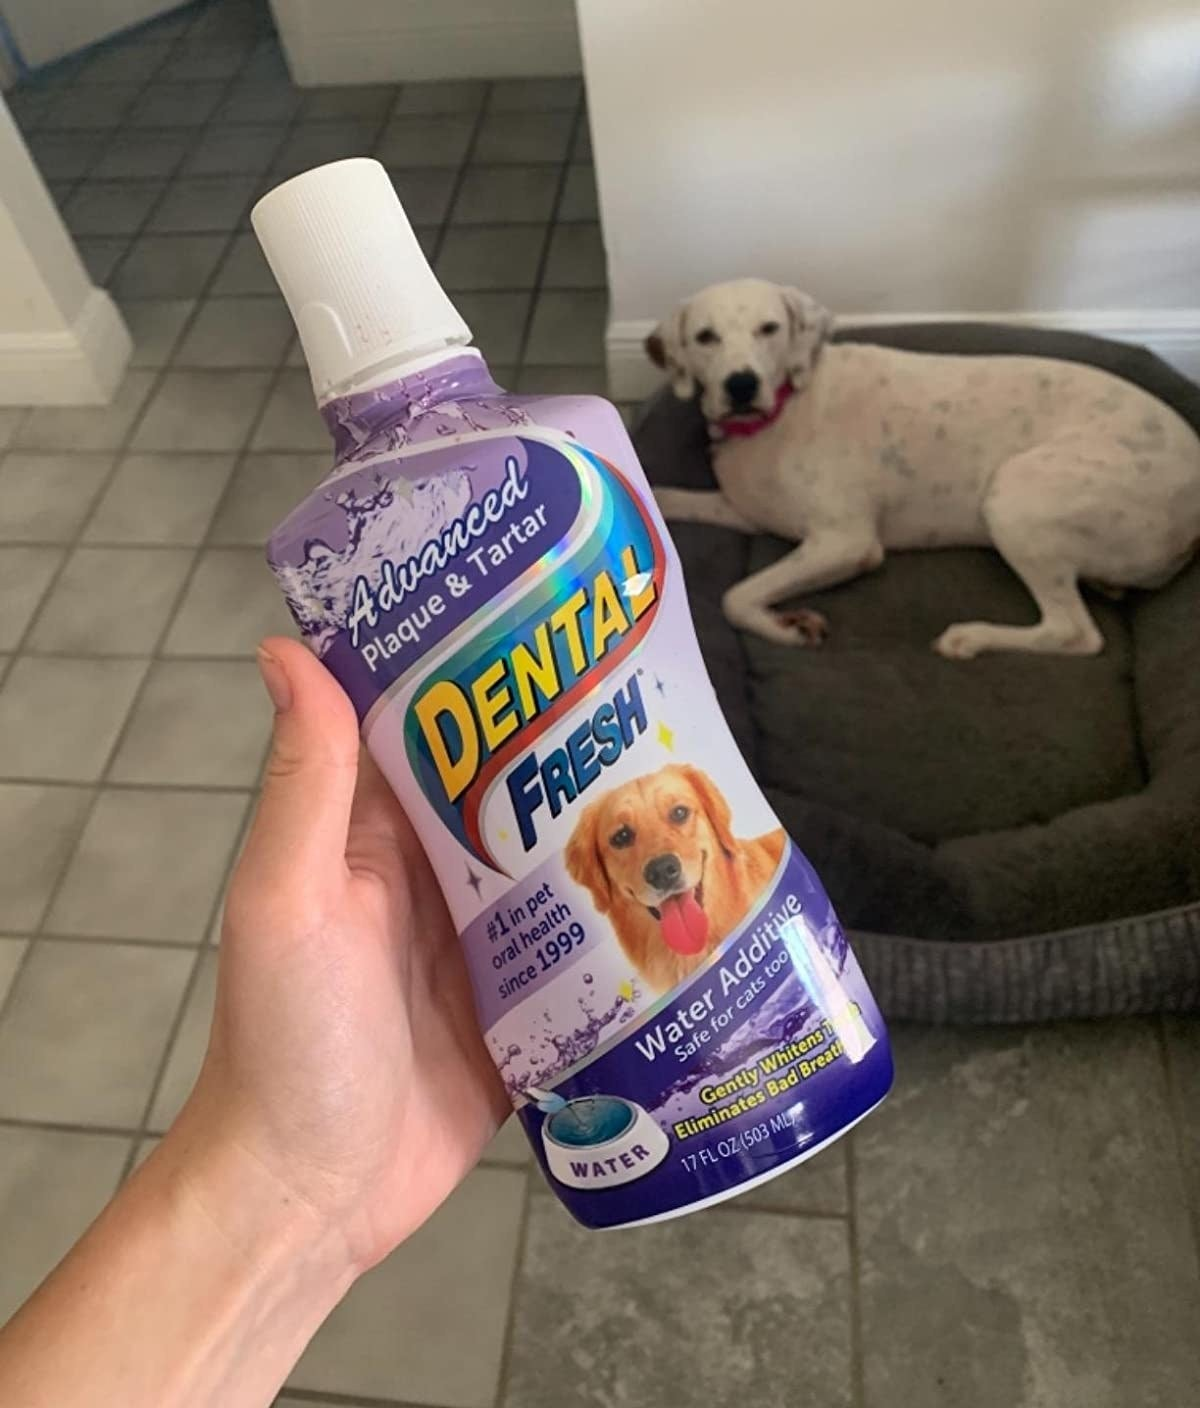 a hand holding the bottle in front of a dog